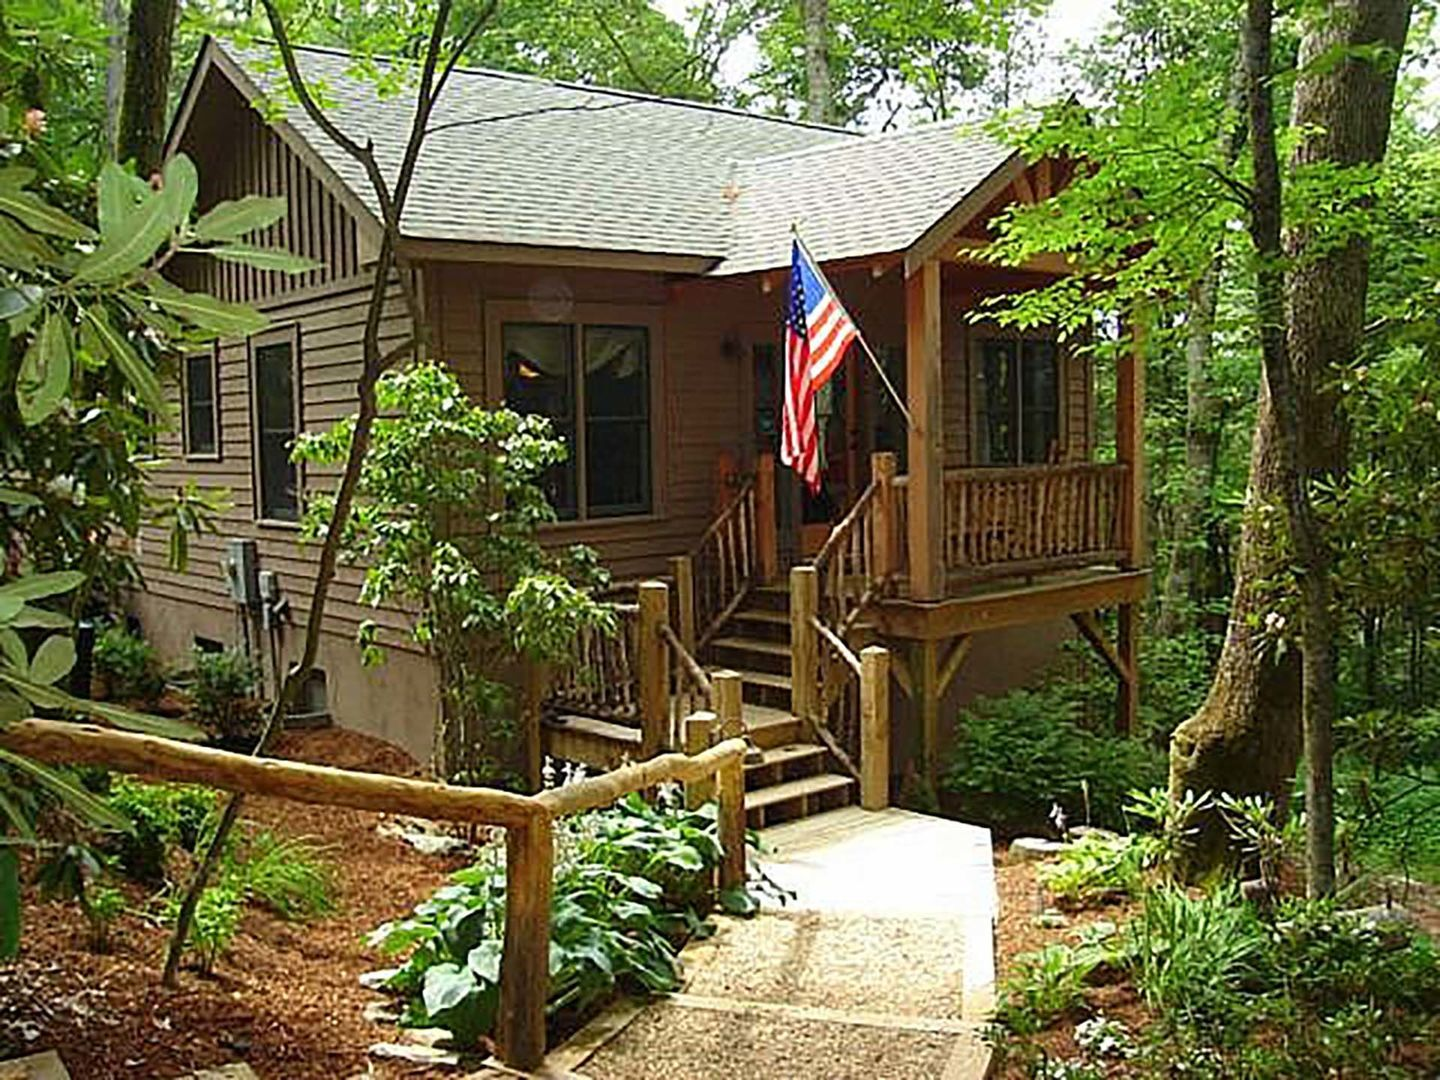 and of rock separate historic inn or cabin chalets cabins blowing rentals mountain to condos cozy town in located authentic high lodging state nc the country stroll appalachian drive heart